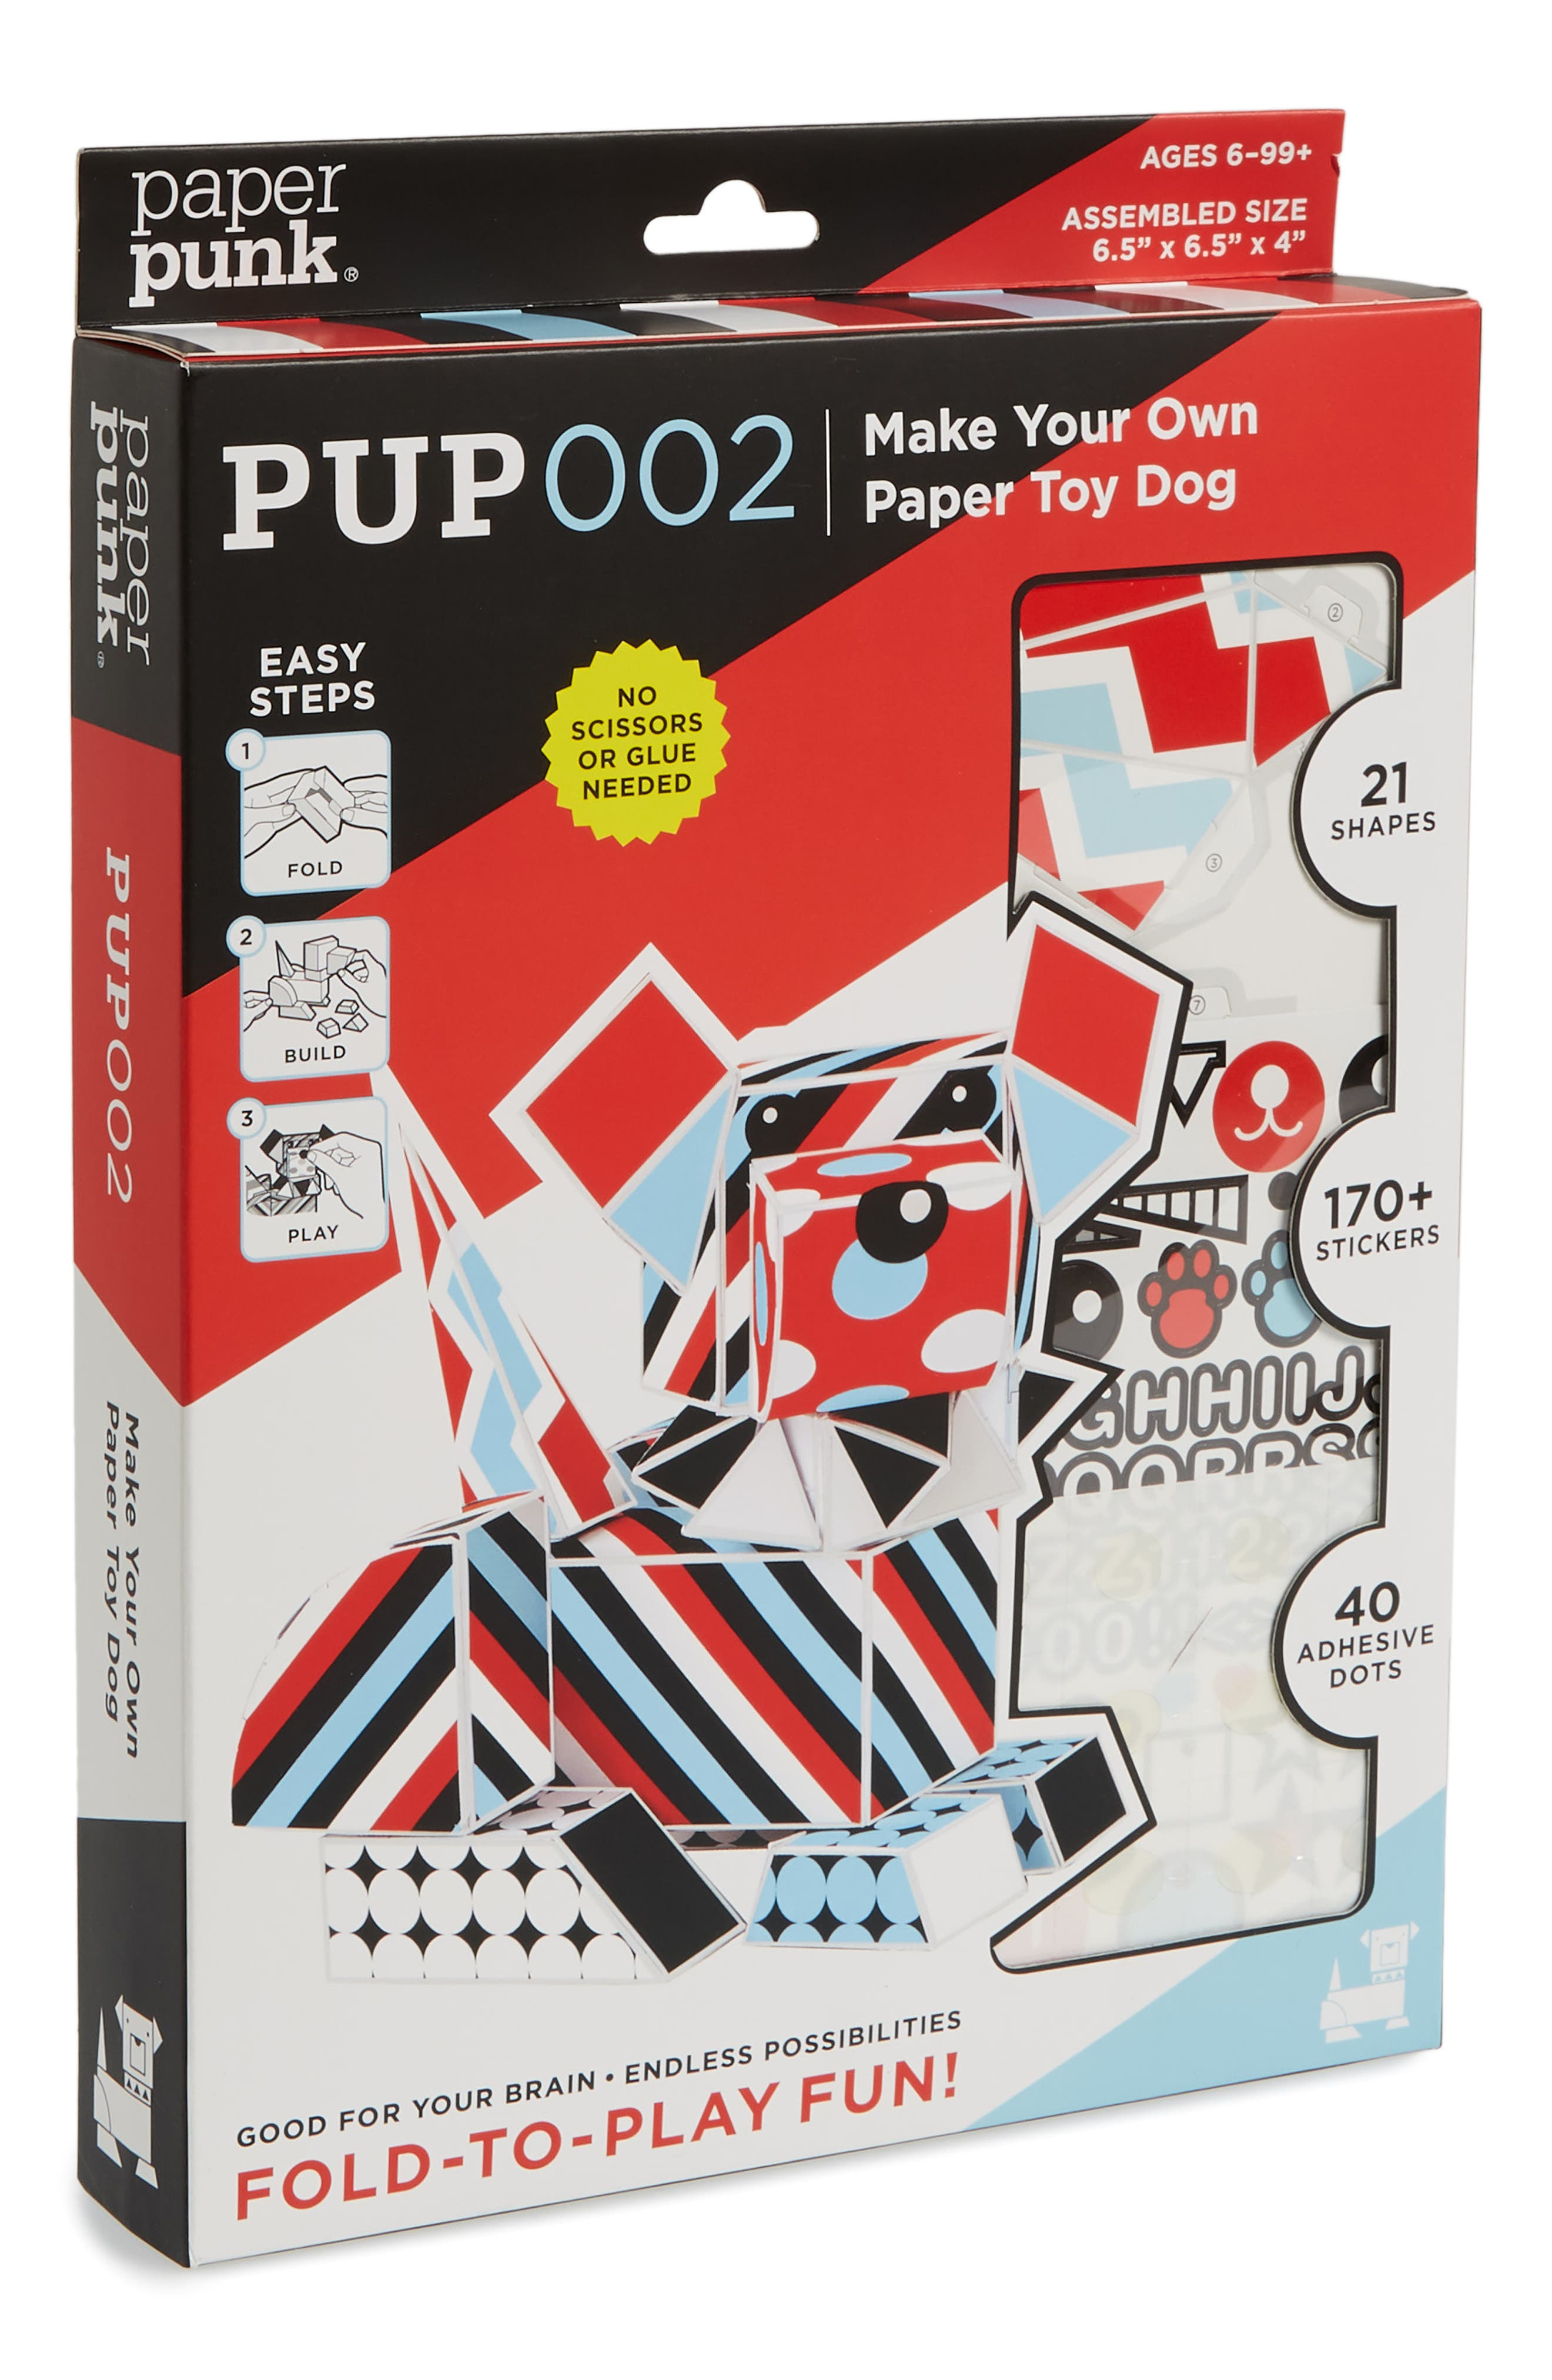 Pup002 Make Your Own Paper Toy Dog Kit,                         Main,                         color, Multi